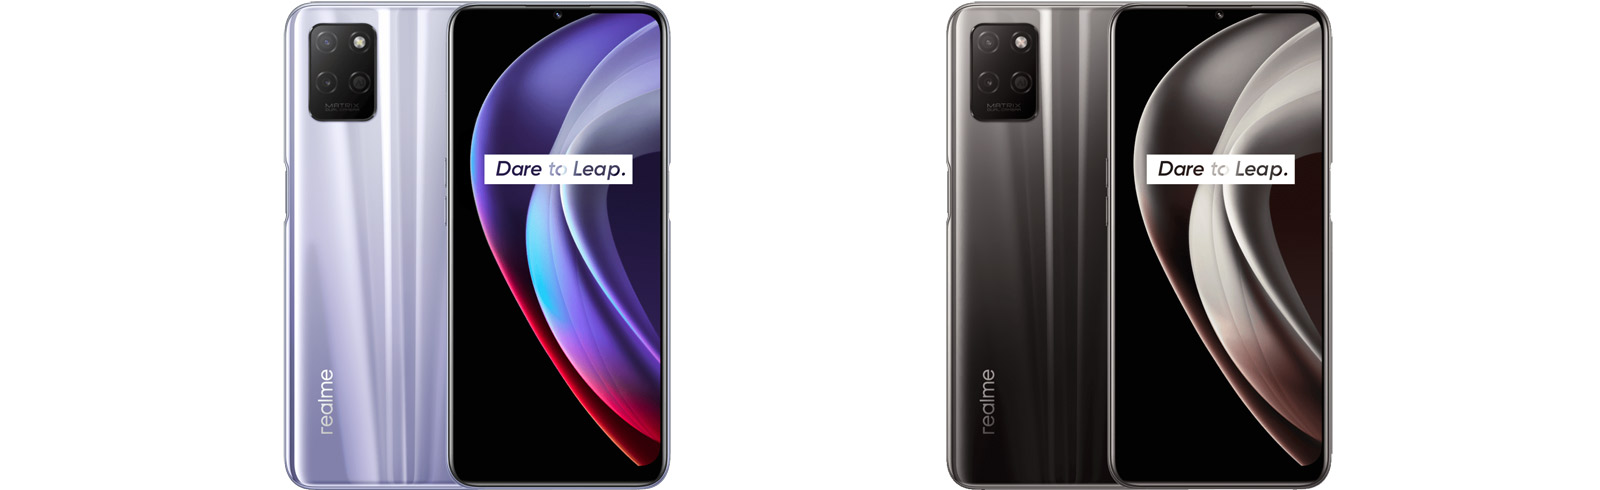 The Realme V11s 5G is unveiled in China featuring a Dimensity 810 chipset